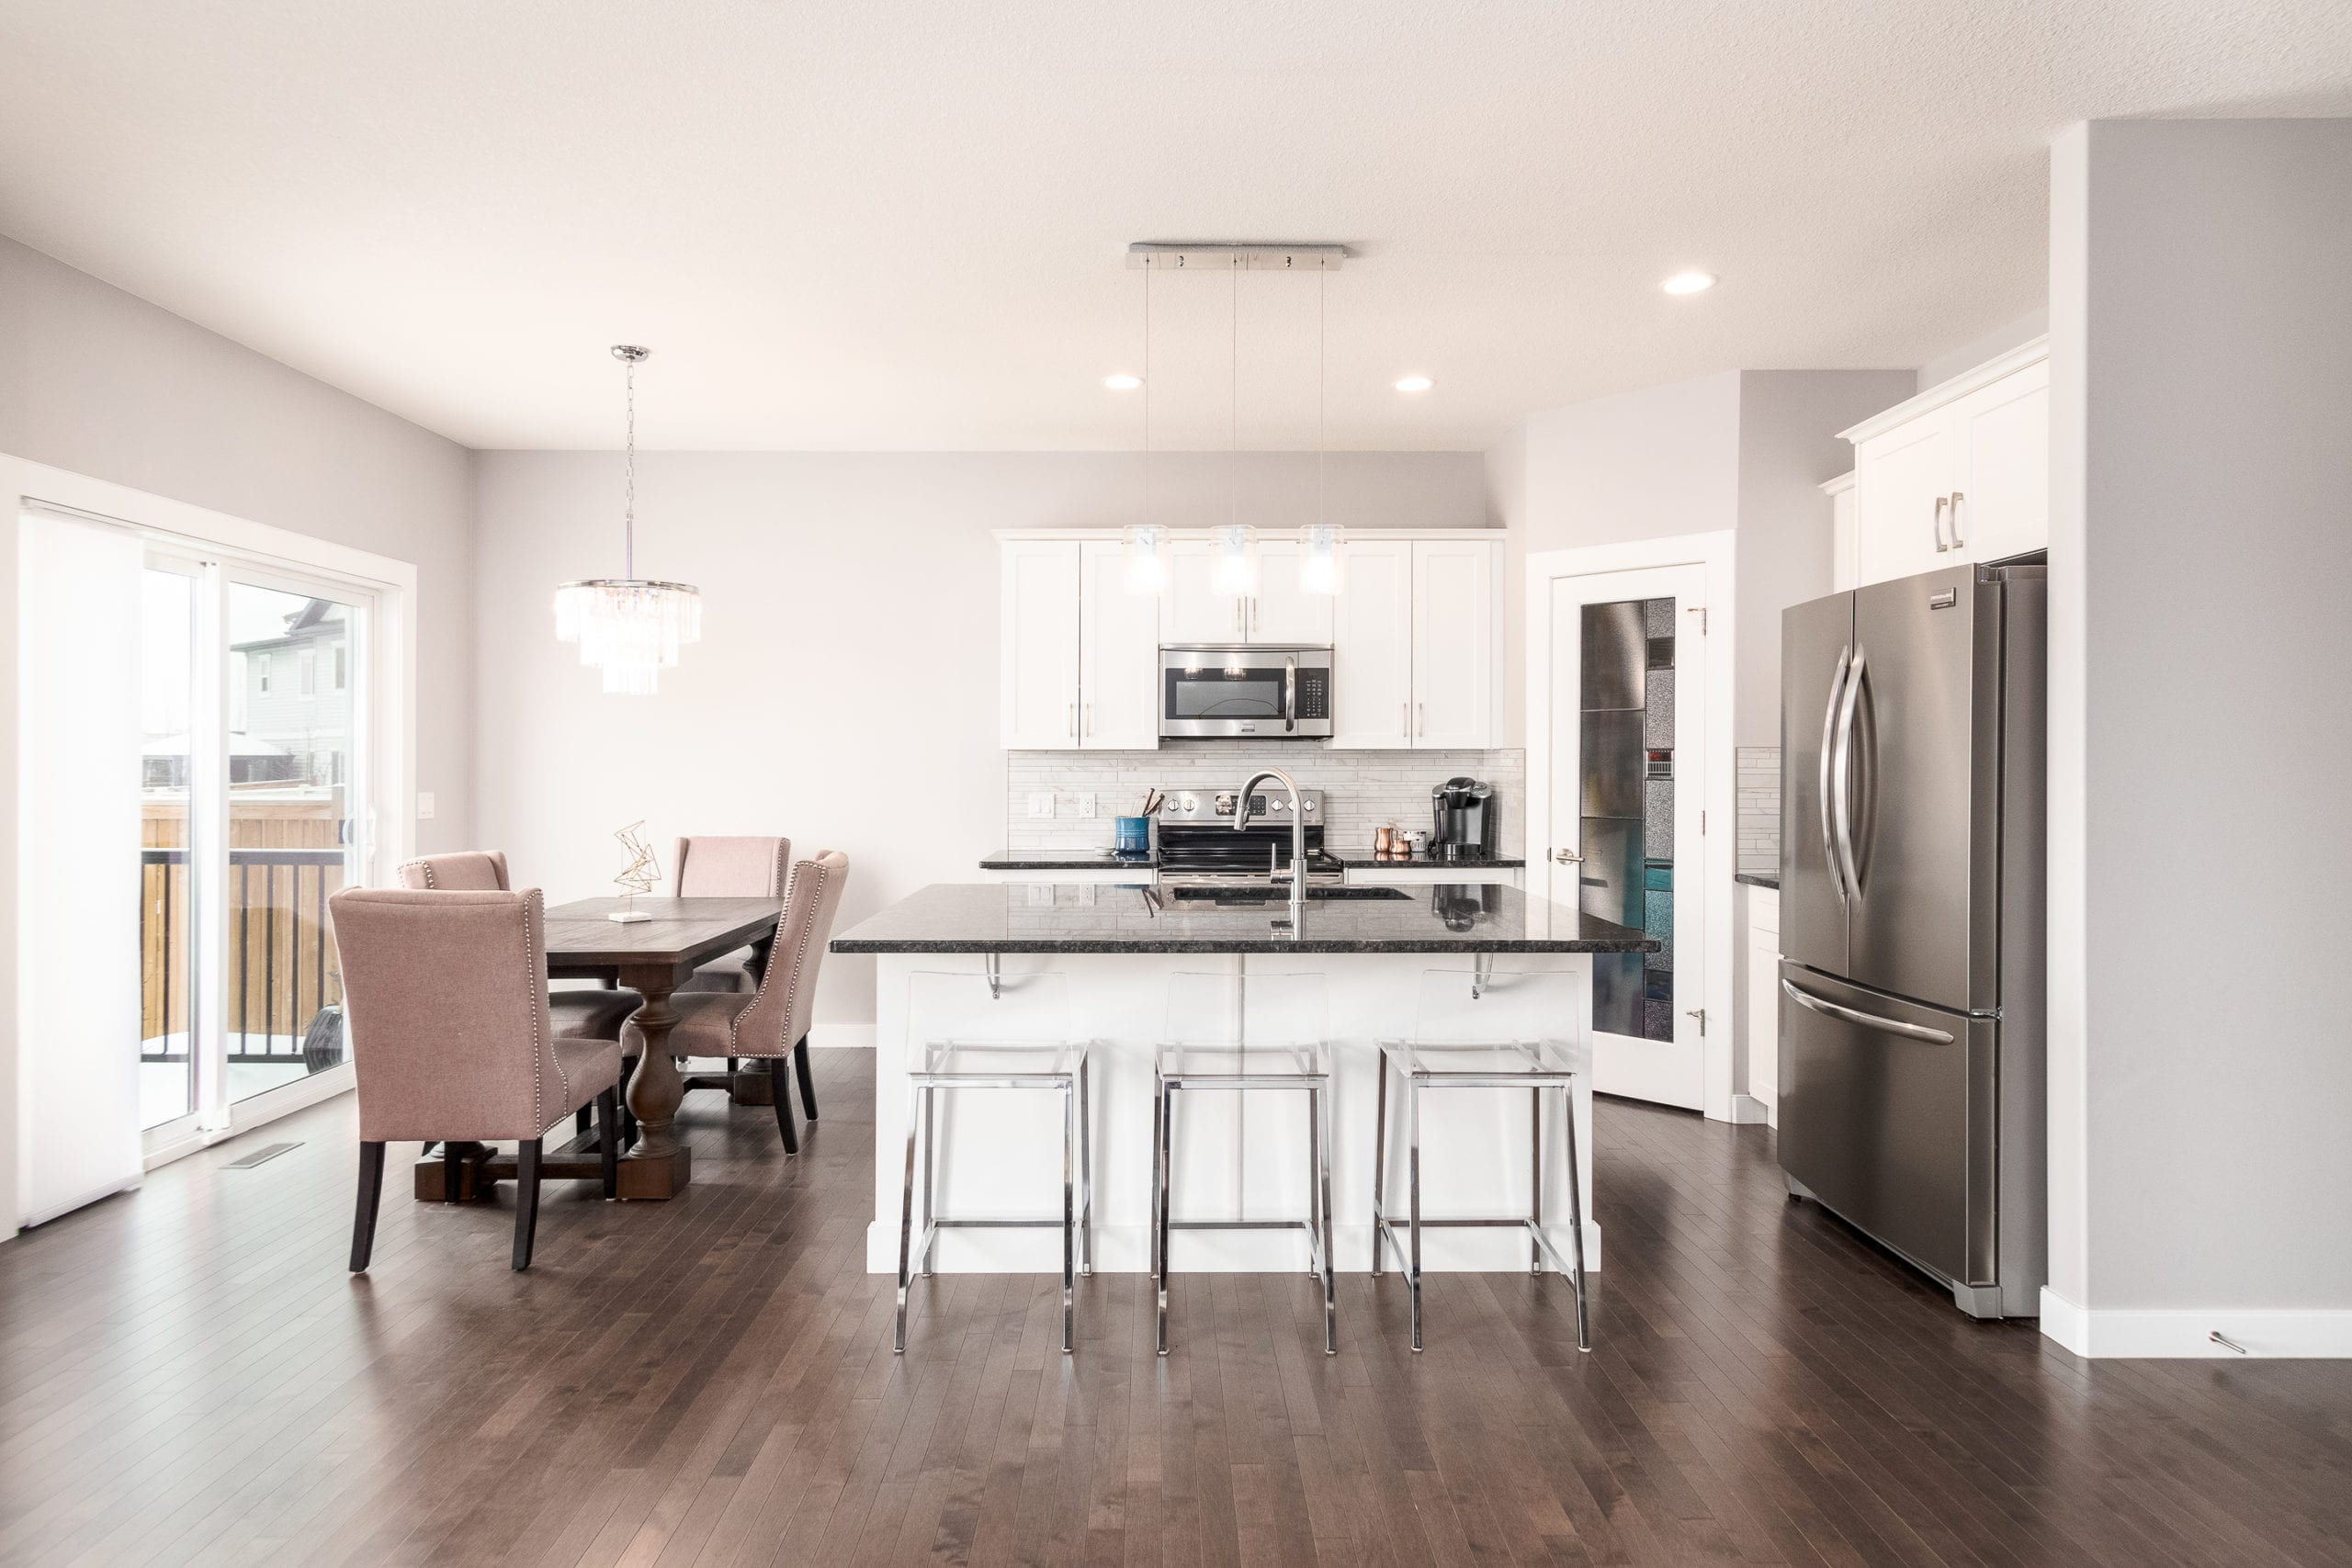 Hello Gorgeous - 1306 Kings Heights Way SE, Airdrie AB. - Tara Molina Real Estate (5 of 53)